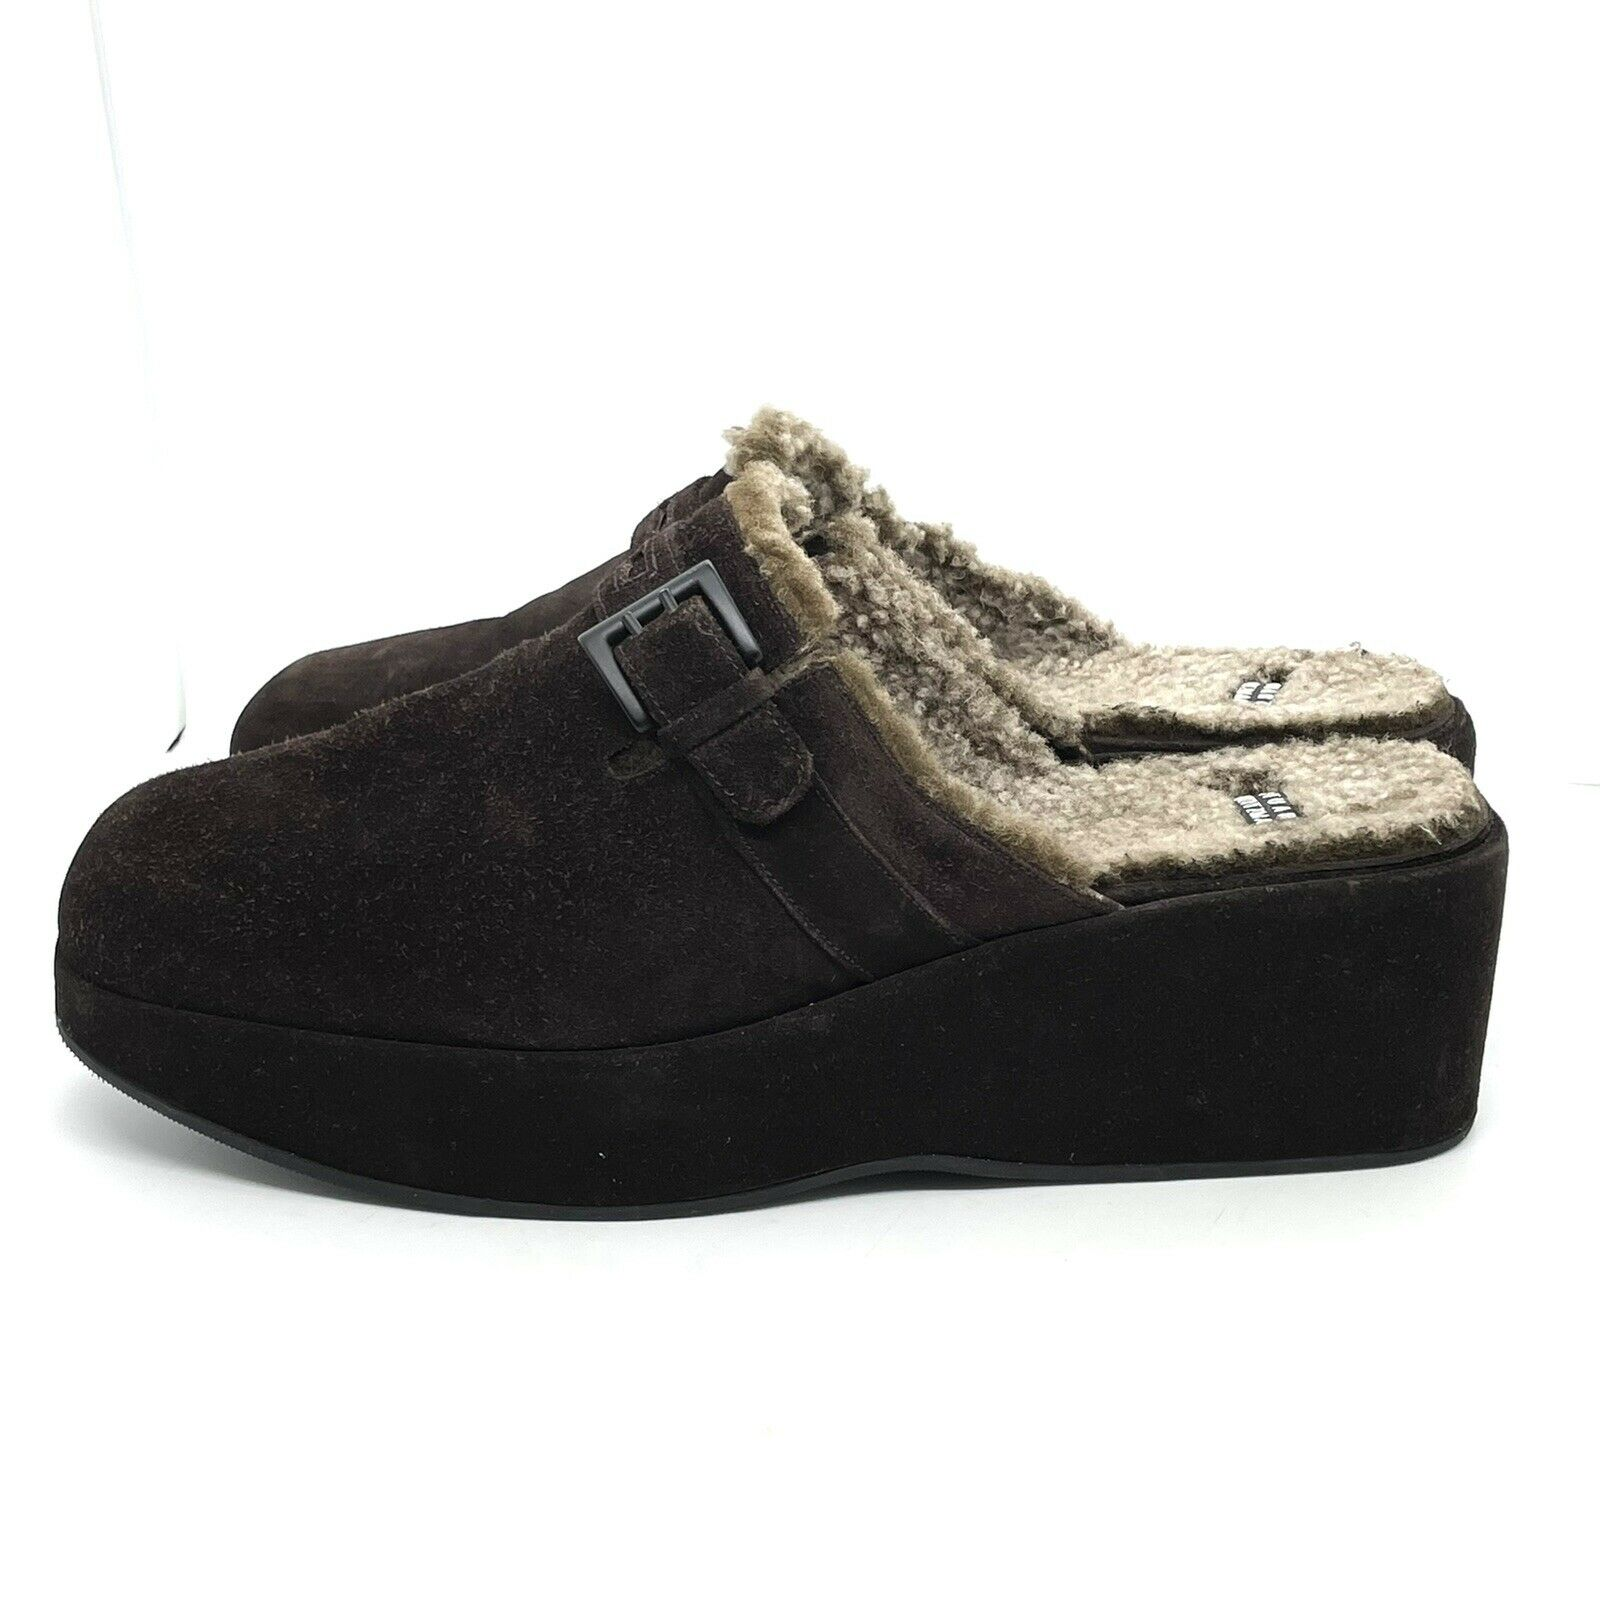 STUART WEITZMAN WOMENS 8.5M Brown SUEDE MULES CLOGS SHEARLING LINED SLIP ON SHOE